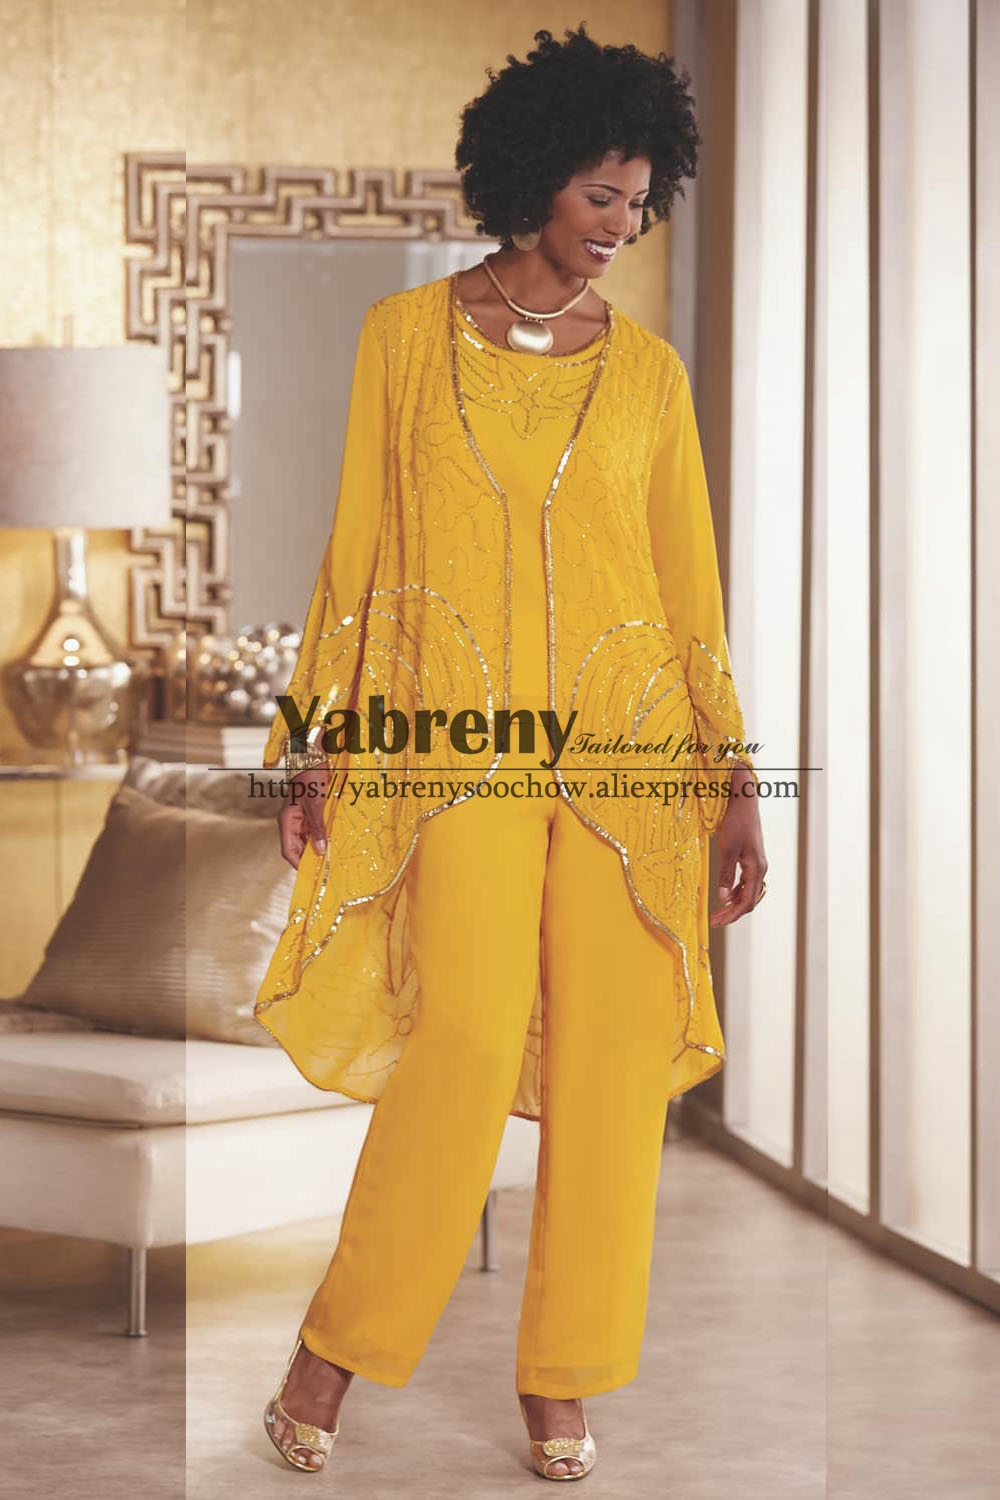 Gold Yellow Beaded Trousers Outfit Mother Of The Bride Pant Suit Wear